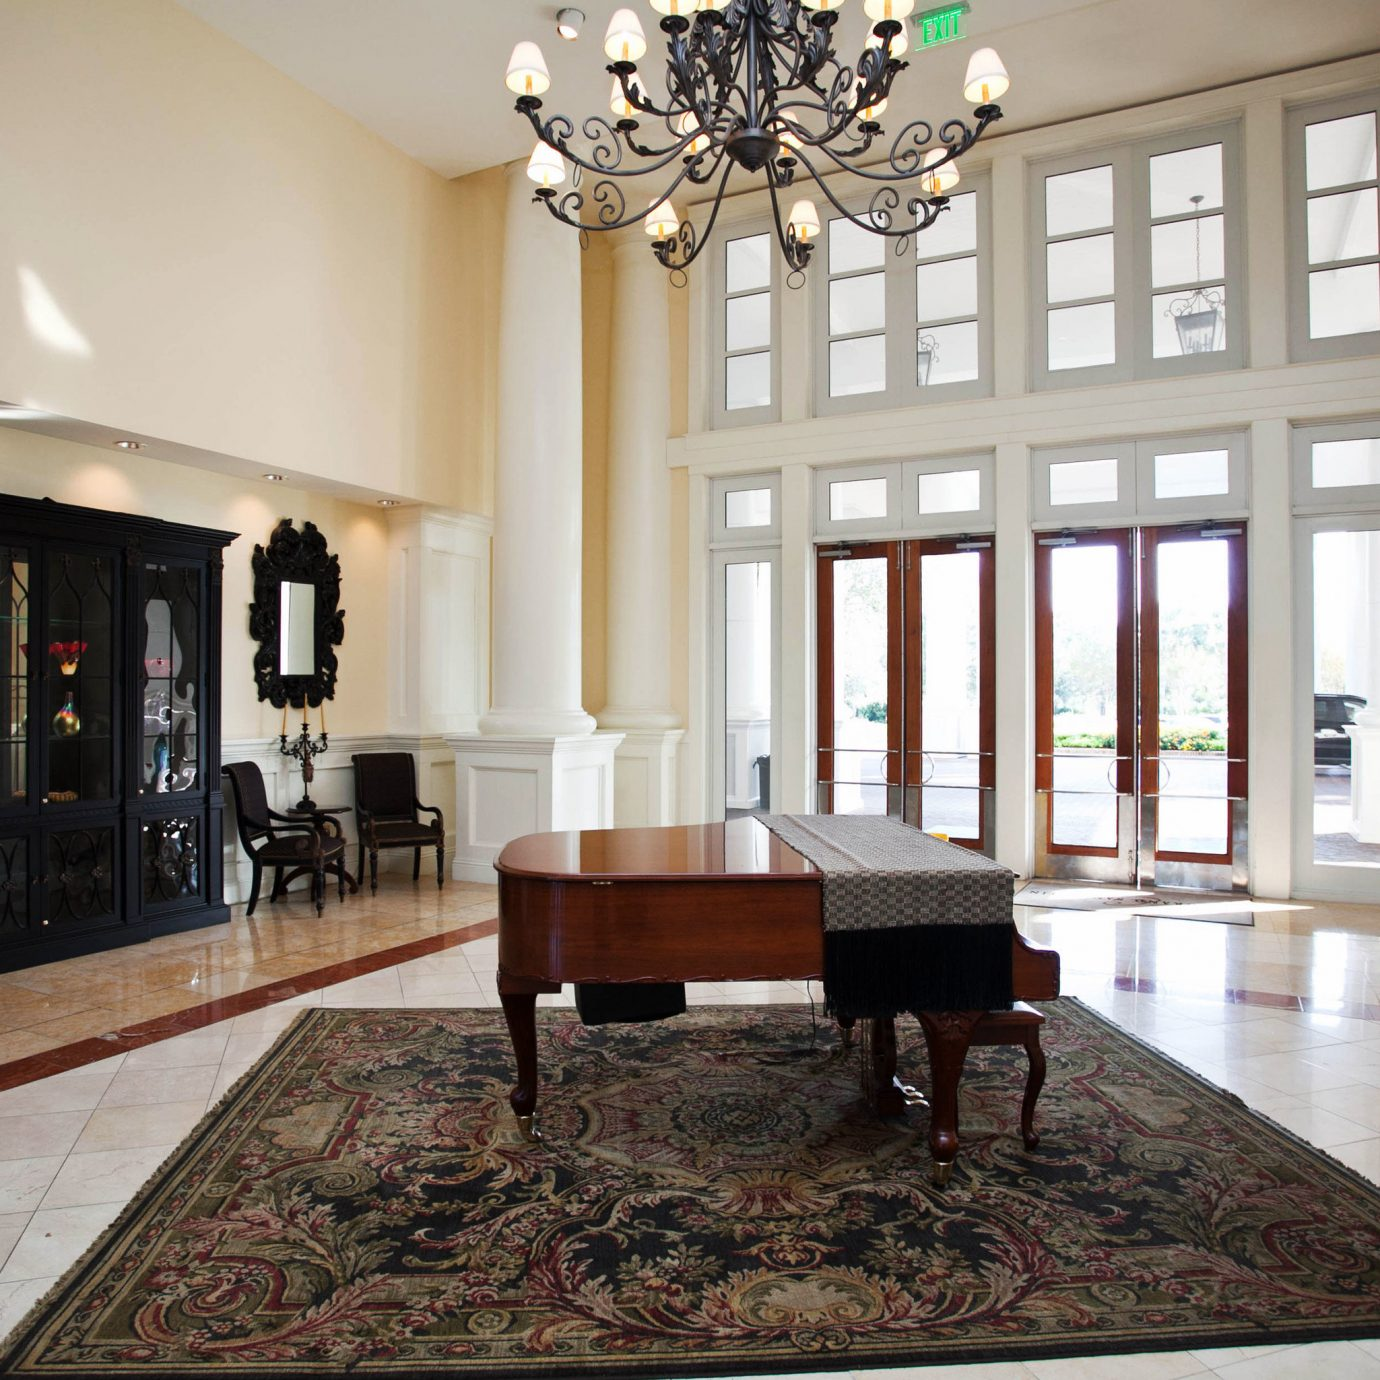 property living room Lobby home hardwood flooring mansion wood flooring hall